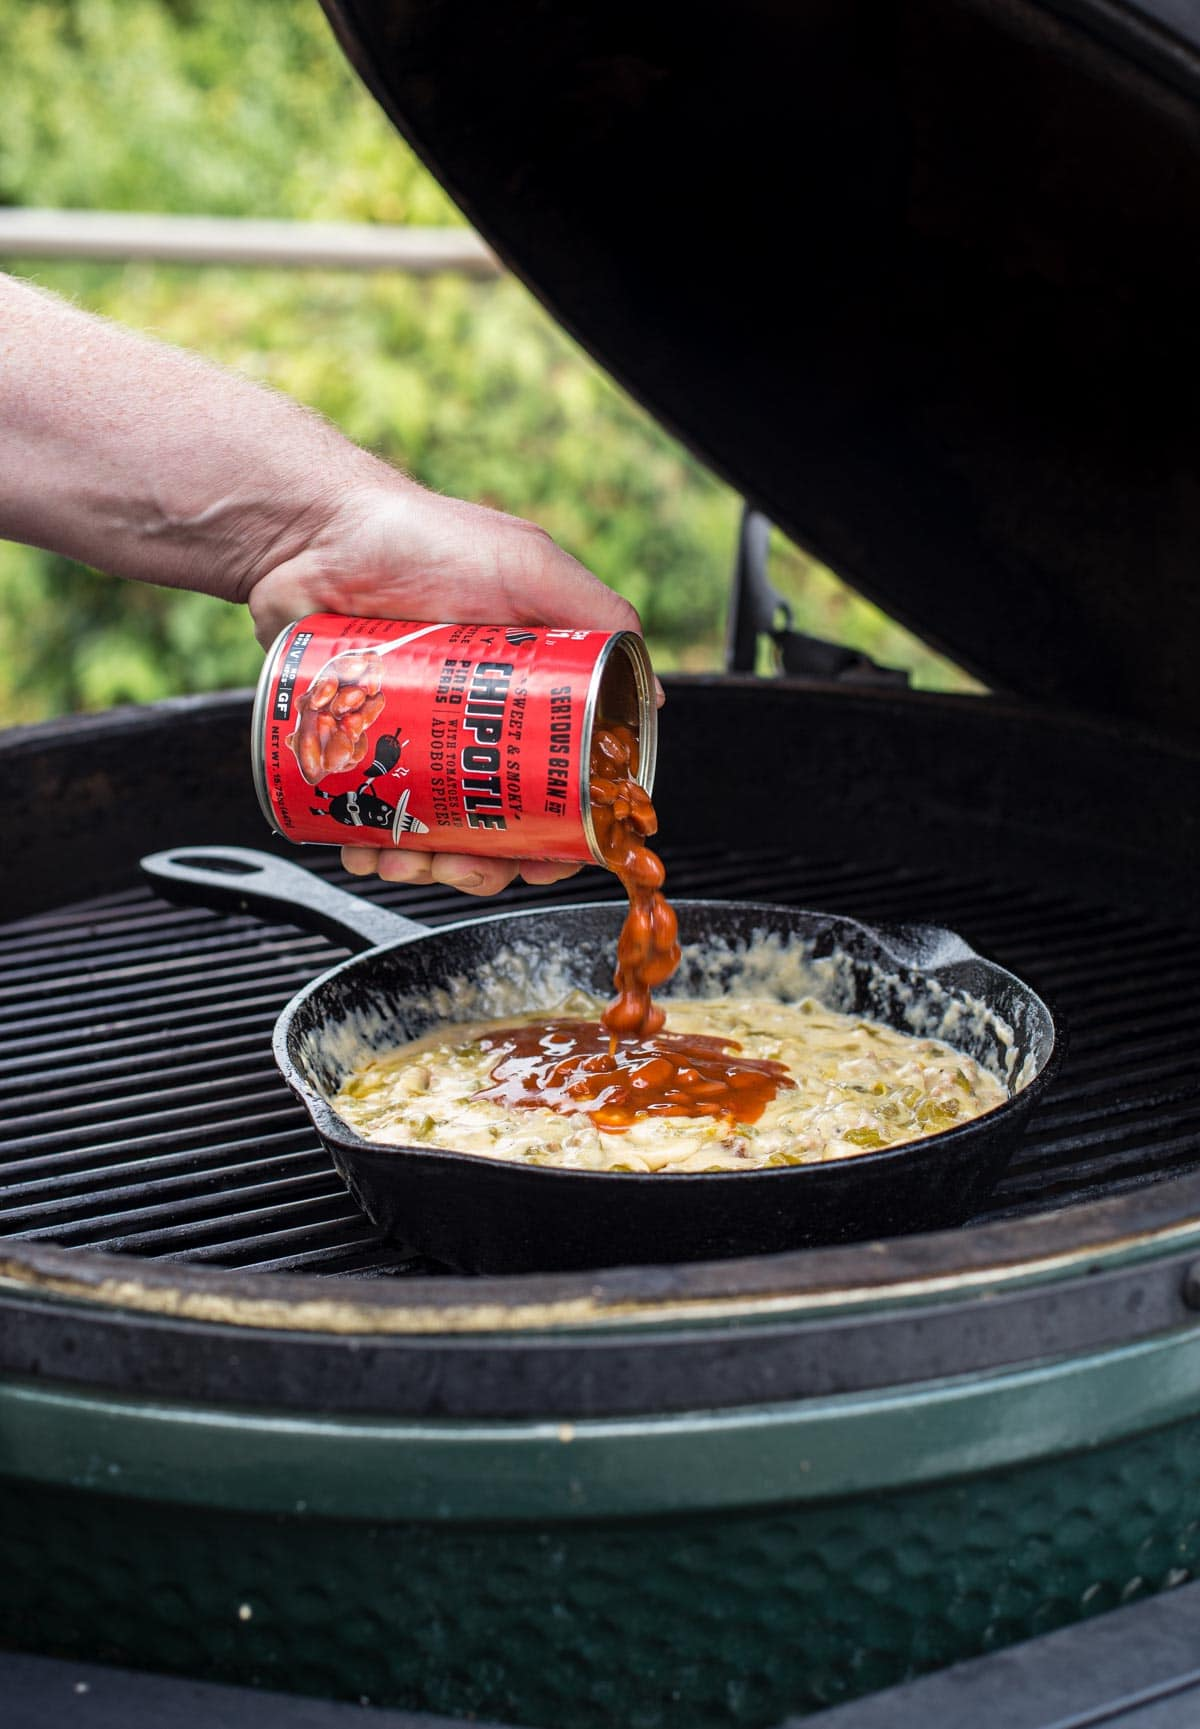 Pouring a can of beans into a queso dip on a grill